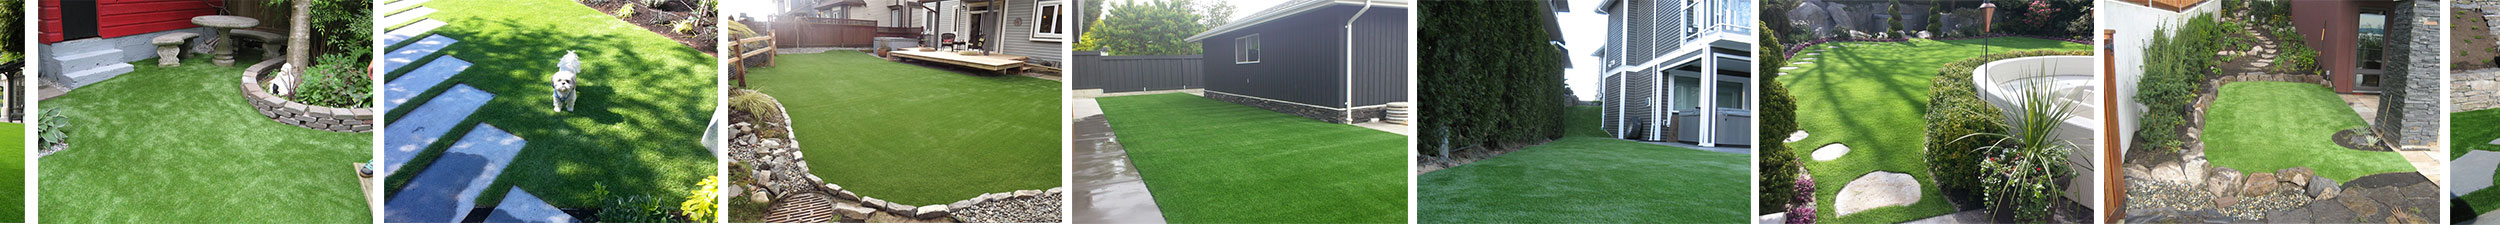 examples of artifiicial grass in residential backyards